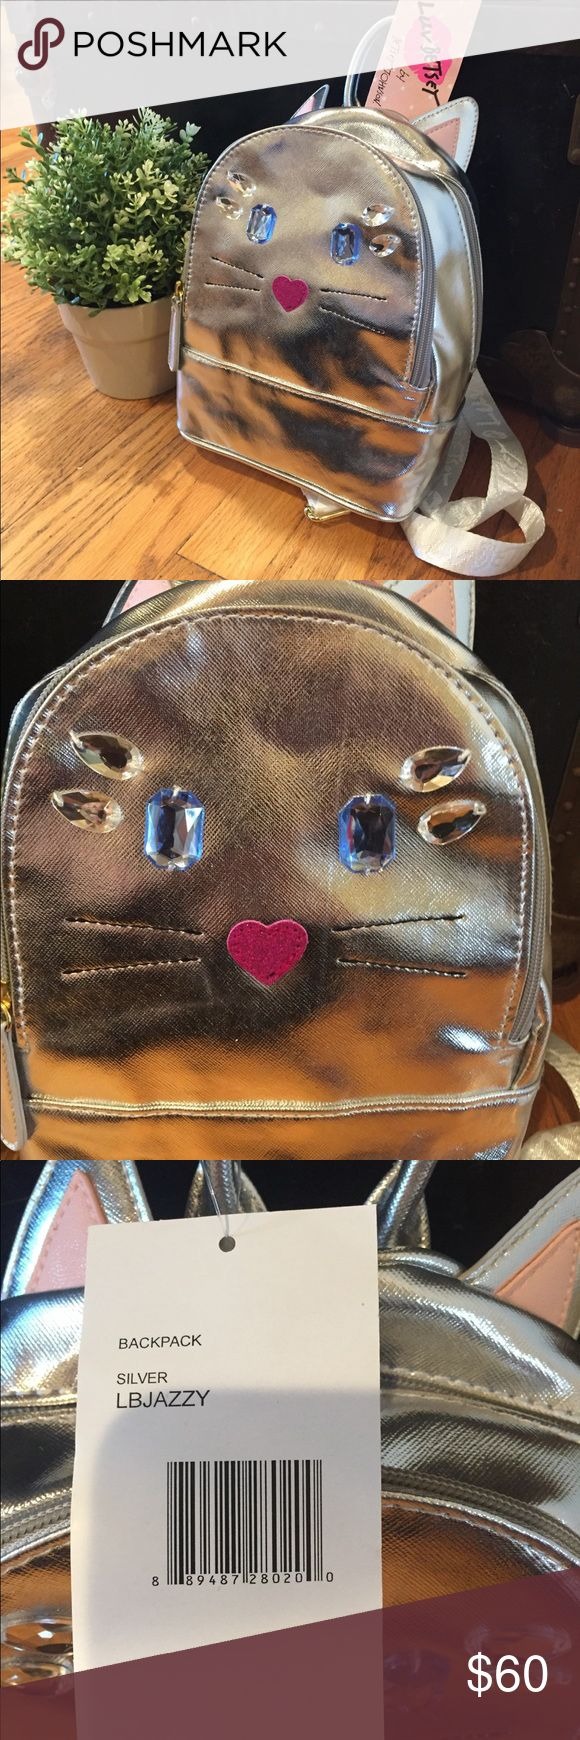 Betsey Johnson cat metallic silver backpack Adorable mini cat backpack in metallic silver! Org. $78 no flaws! New with tags! Could make a great gift! Betsey Johnson Bags Backpacks